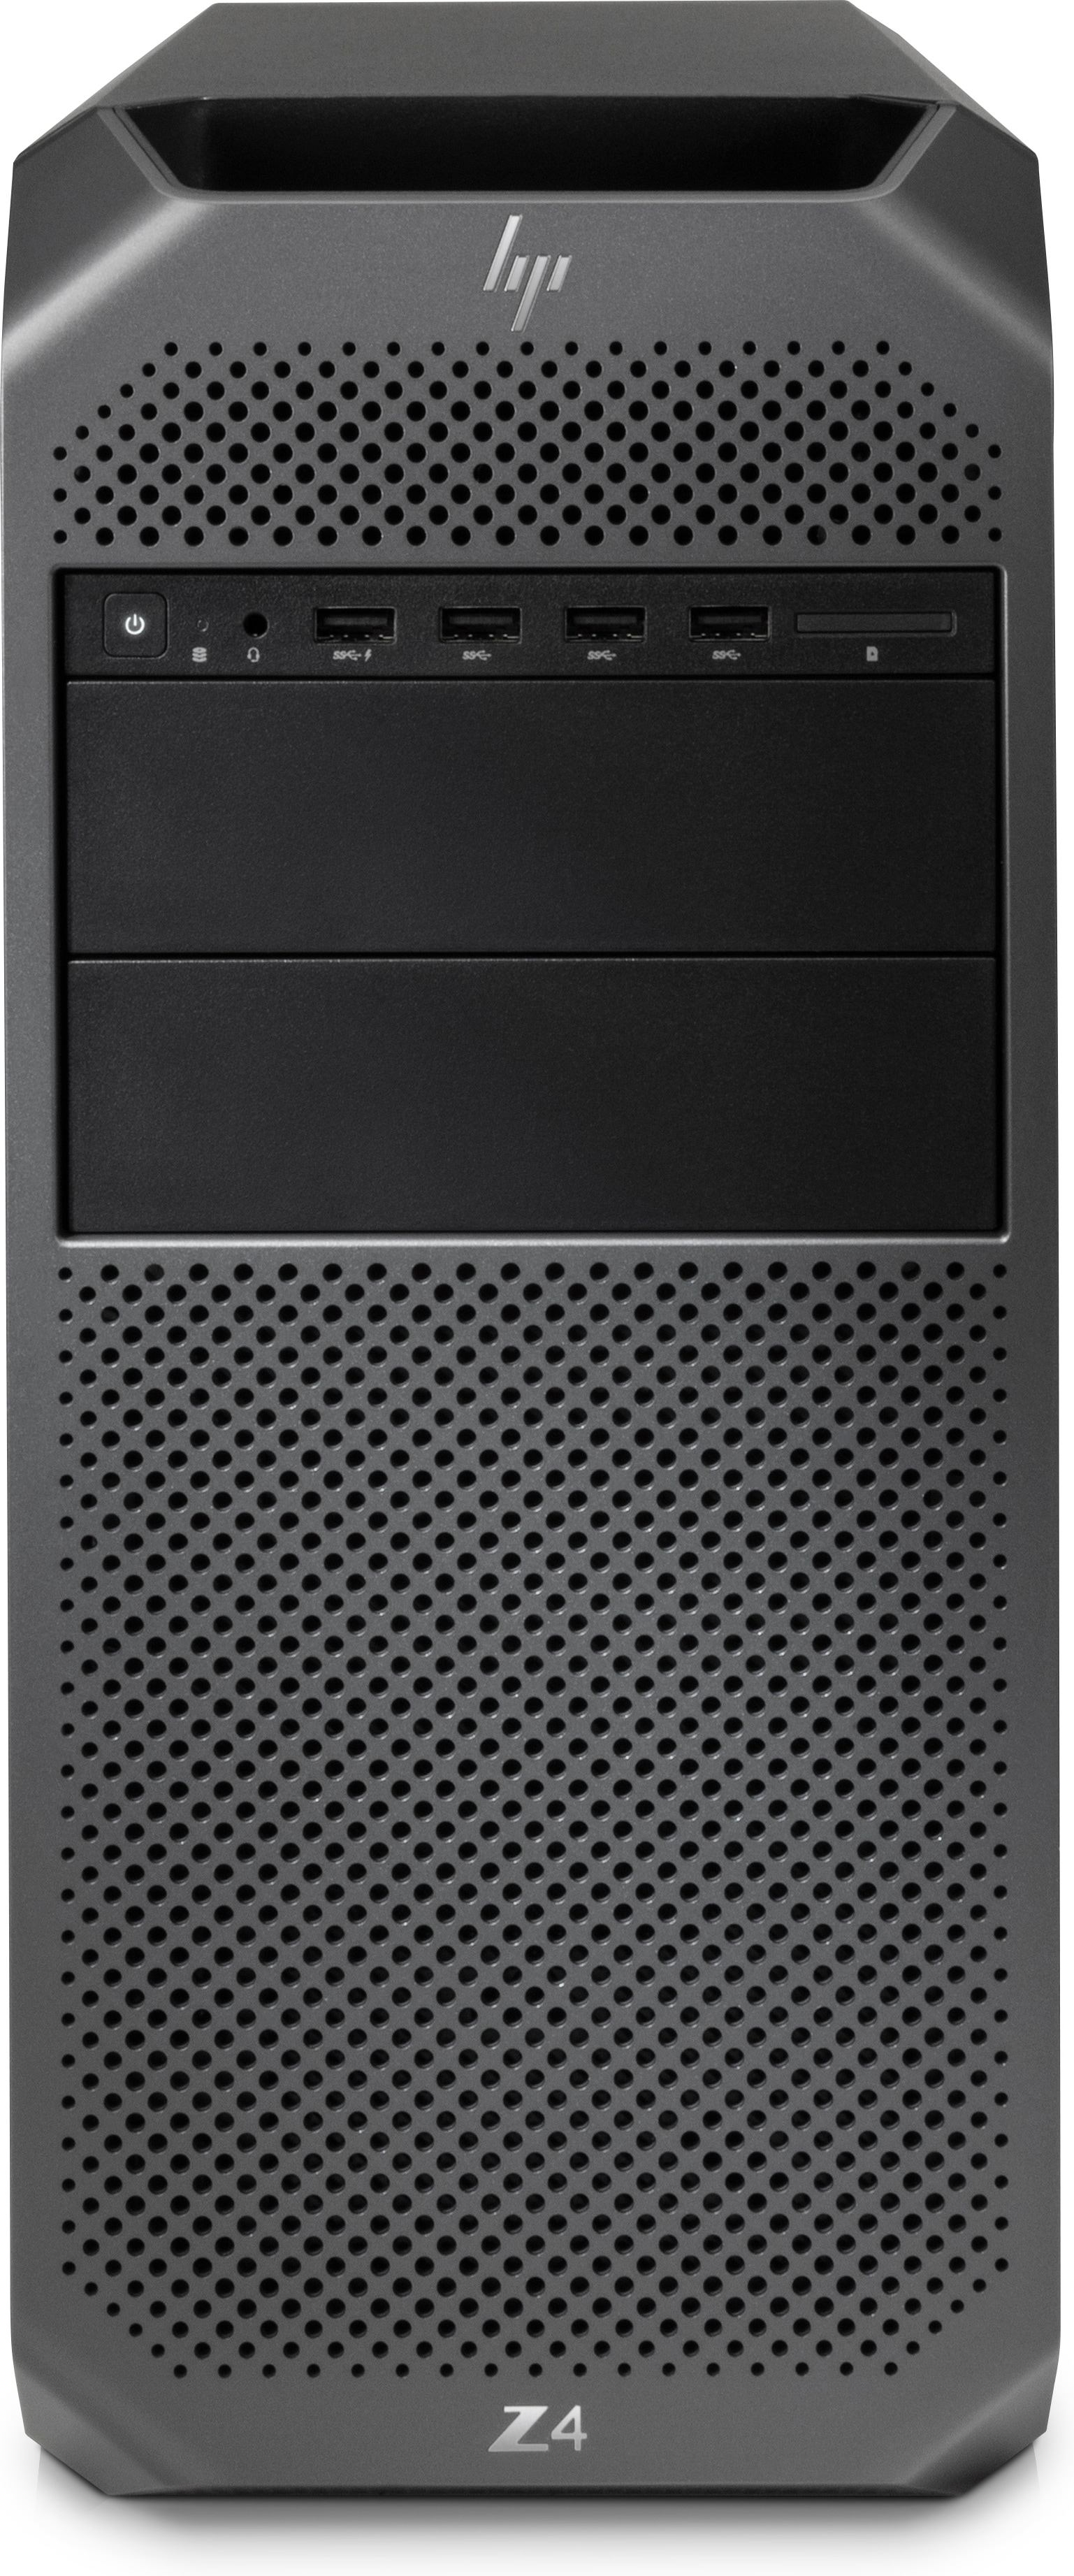 HP Z4 G4 Intel® Core™ X-series i9-7900X 64 GB DDR4-SDRAM 512 GB SSD Black  Mini Tower Workstation